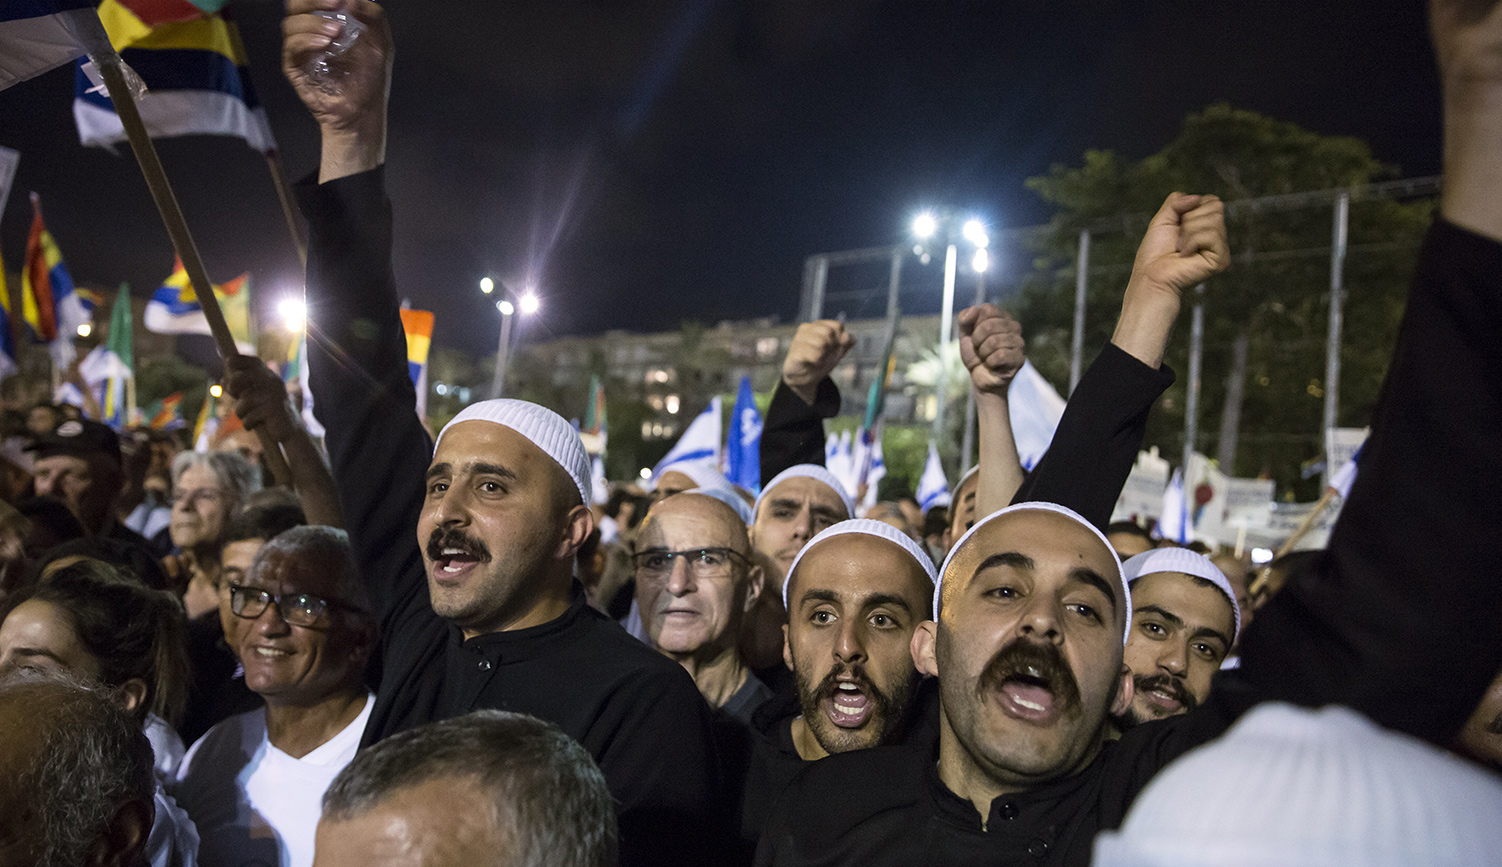 Israeli Druze men protest against the new nation-state law on August 4, 2018 in Tel Aviv. Amir Levy/Getty Images.